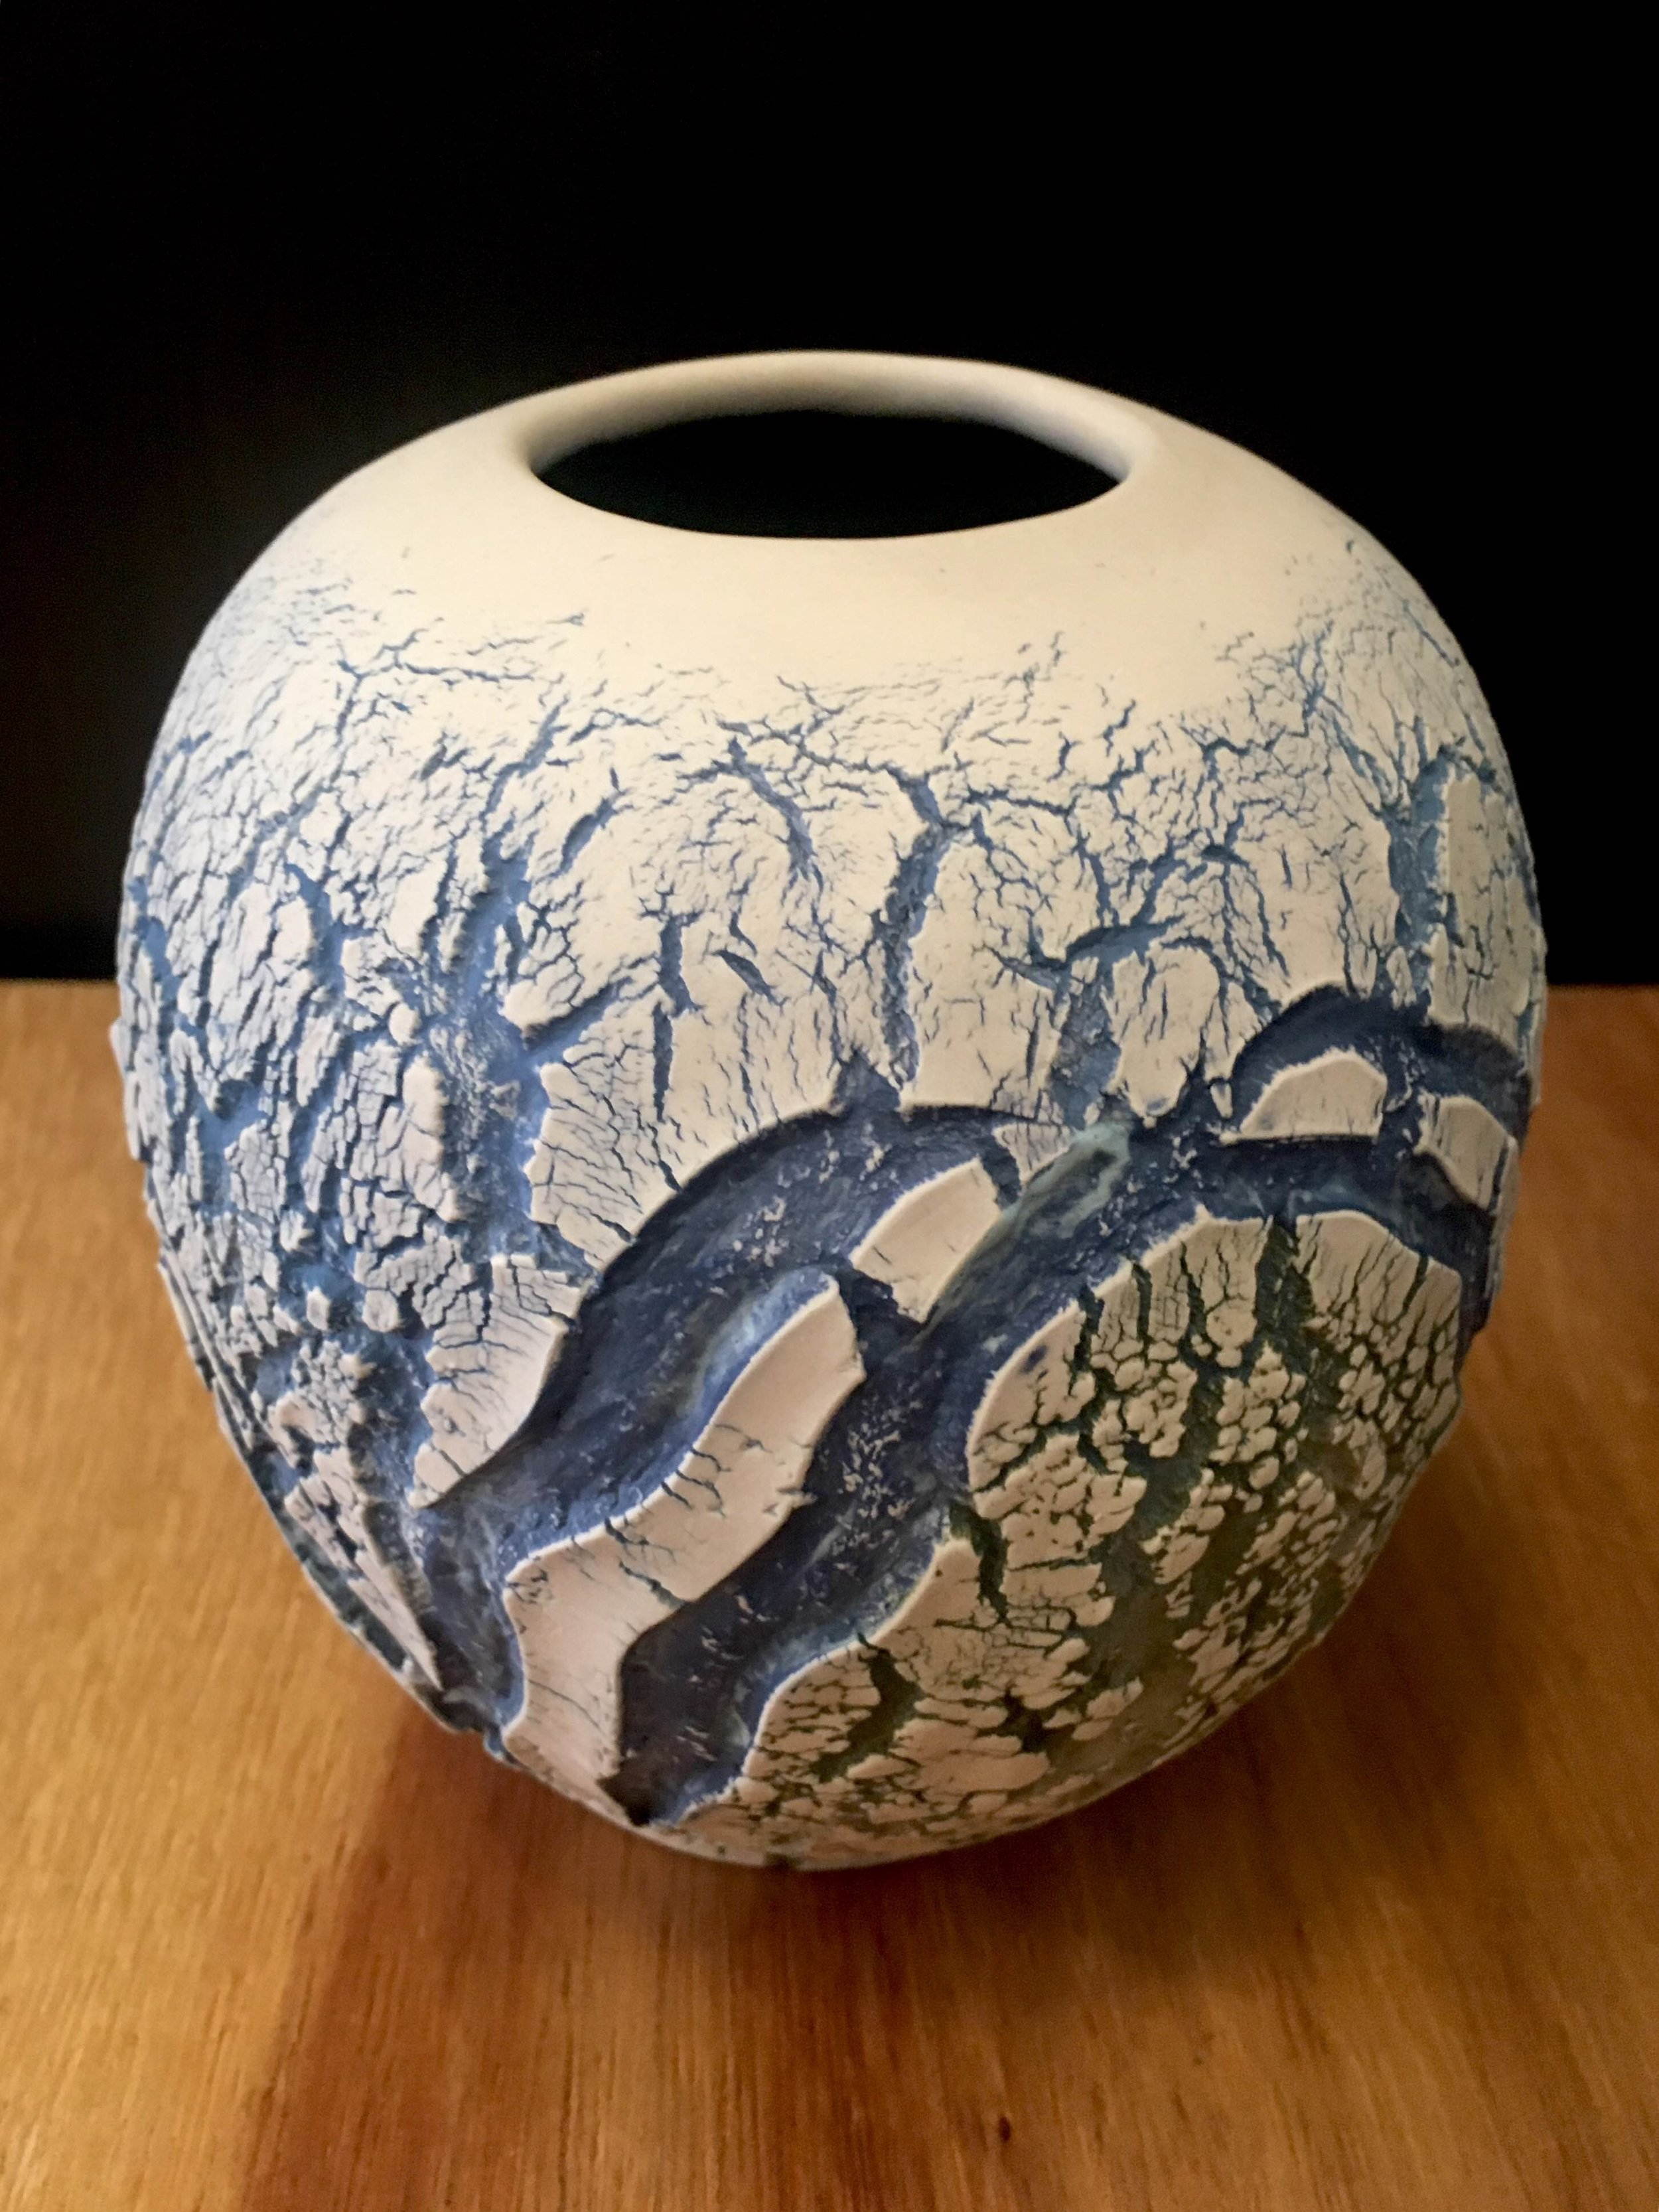 "Large waterfall vase, hand-formed porcelain, 6"" x 5"" diameter"